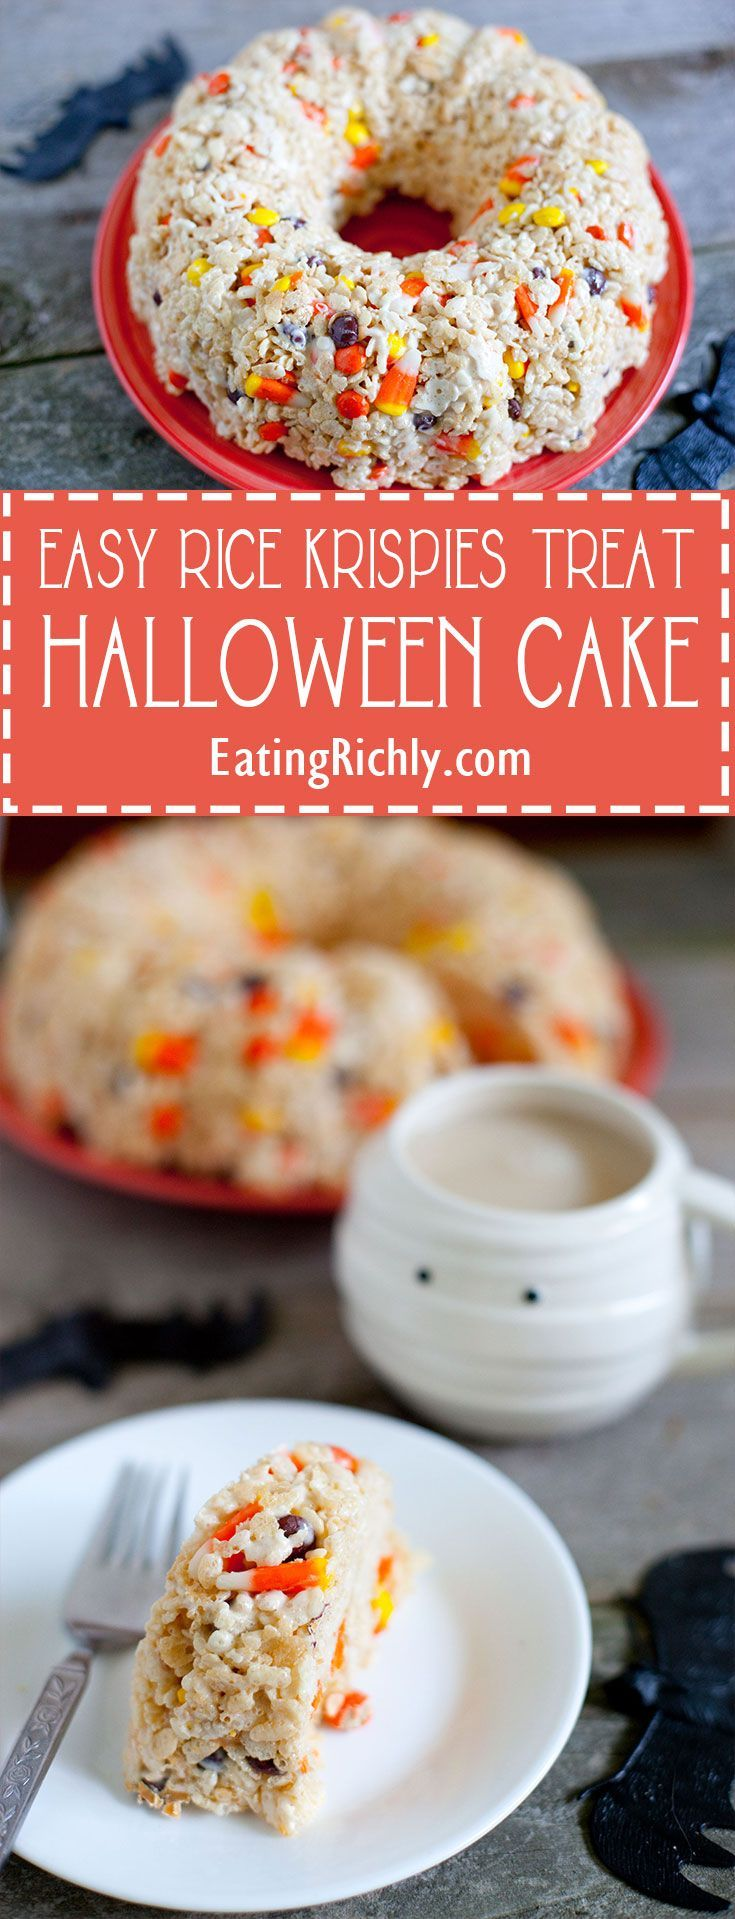 Top 25+ best Halloween rice krispy treats ideas on Pinterest ...